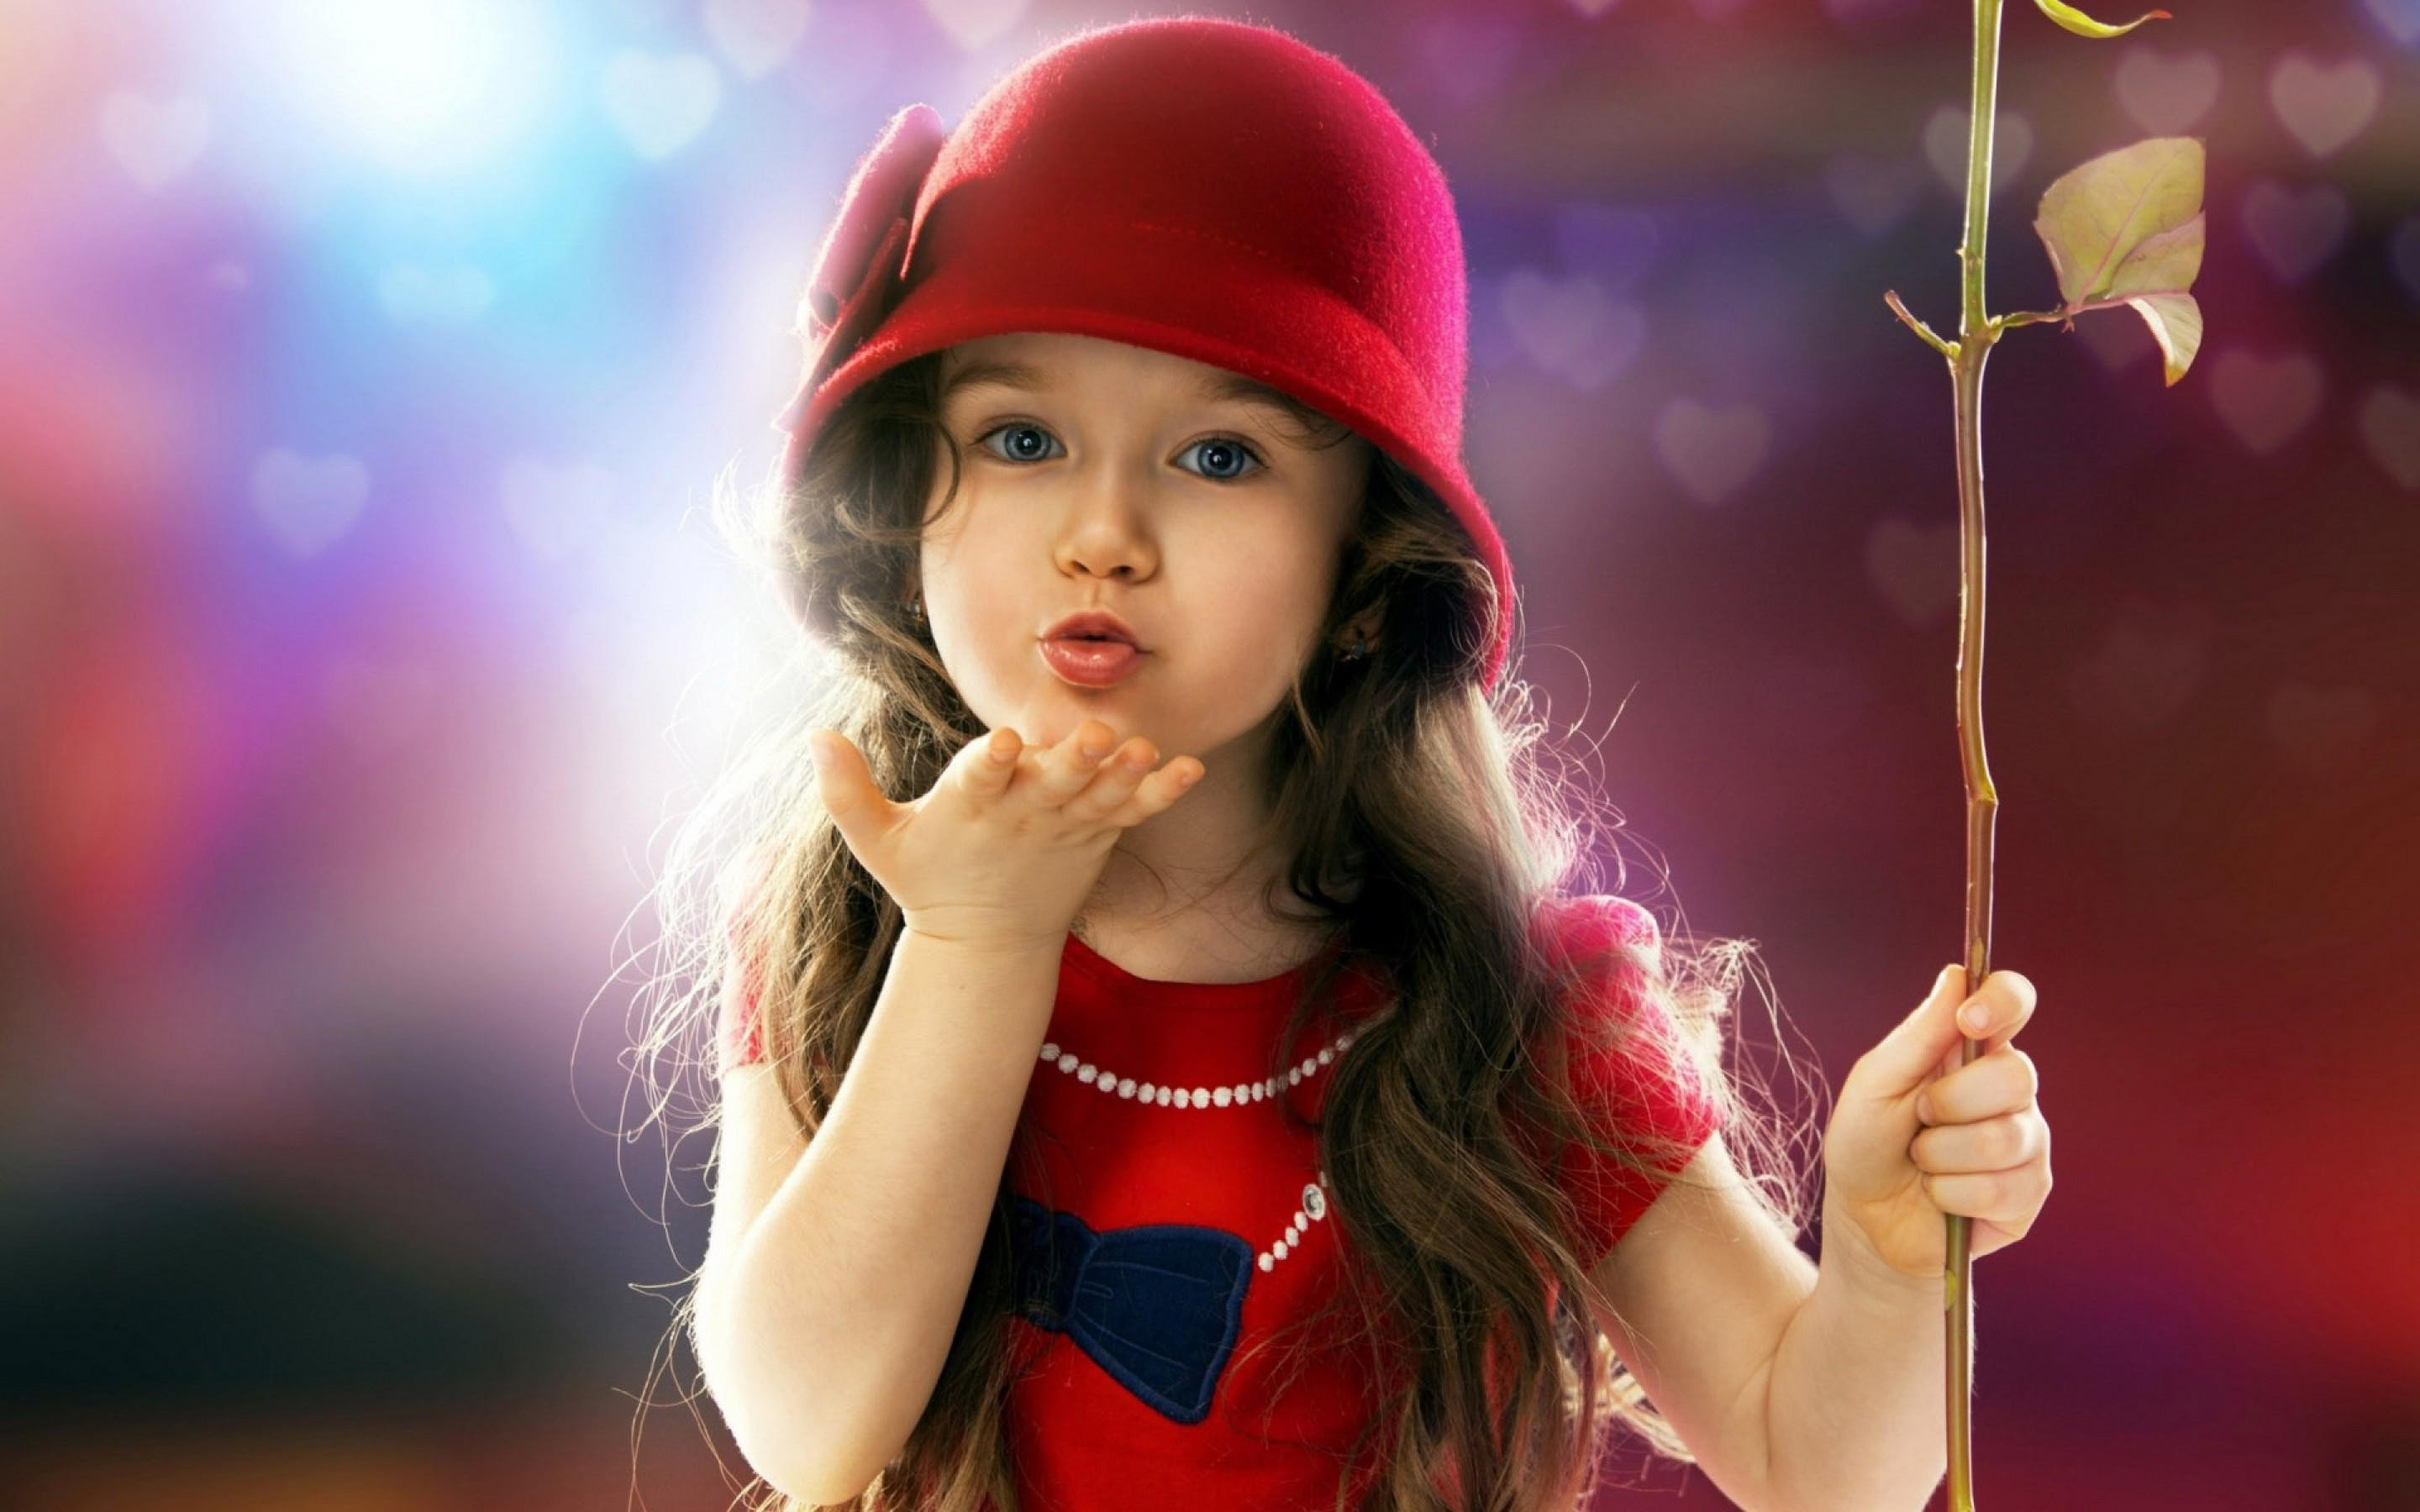 Cute Indian Babies Wallpapers Download Little Girl Blowing A Kiss Hd Cute 4k Wallpapers Images